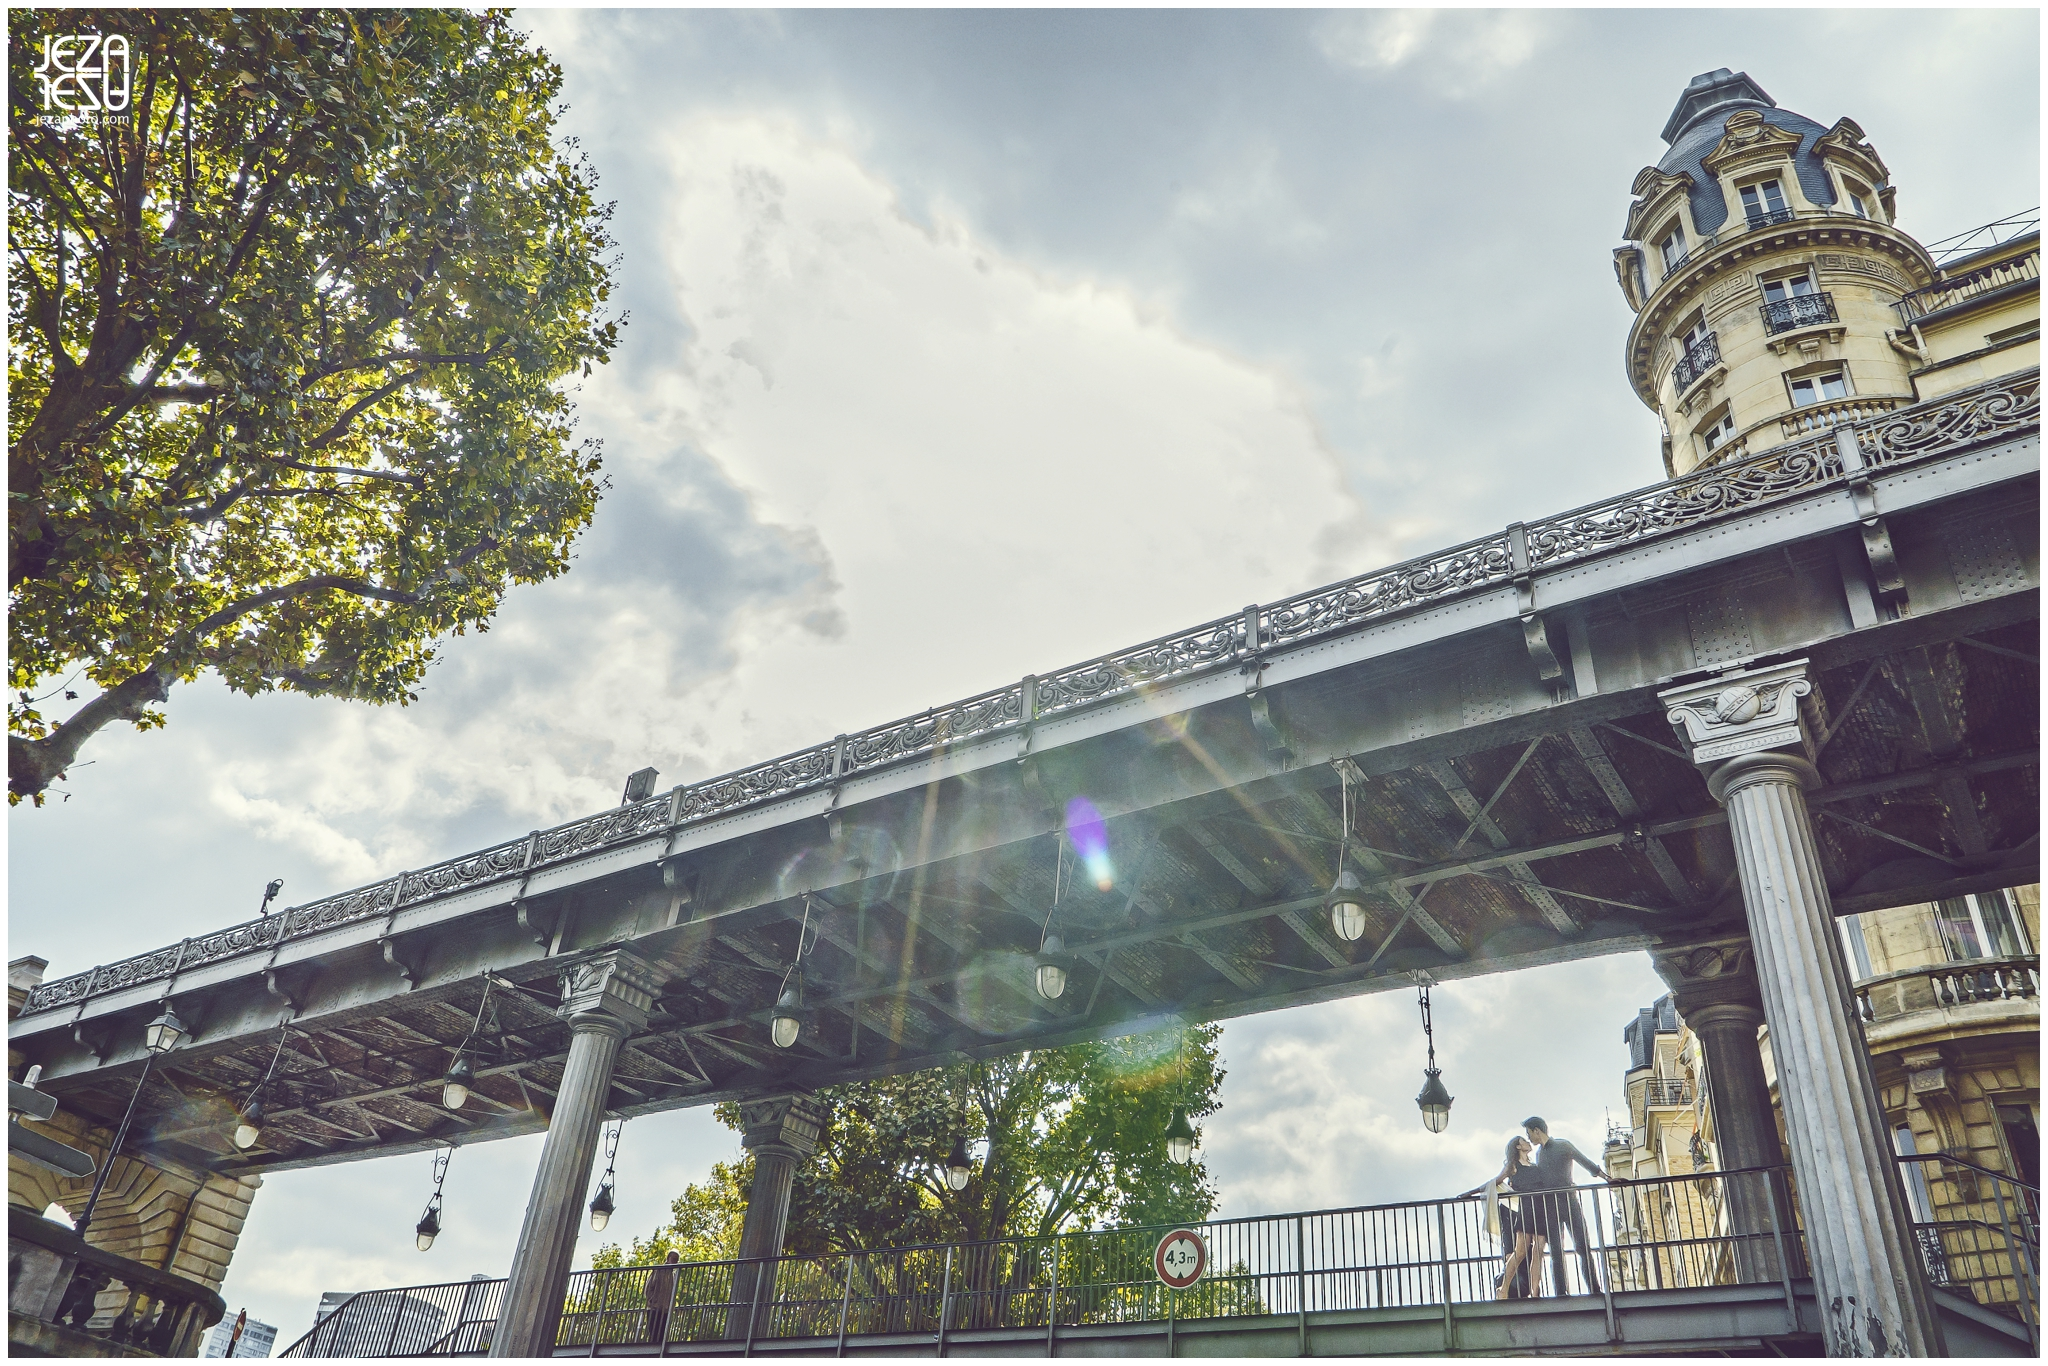 Alice + Kelvin Paris Pont de Bir-Hakeim inception bridge Pre-Wedding Photo session